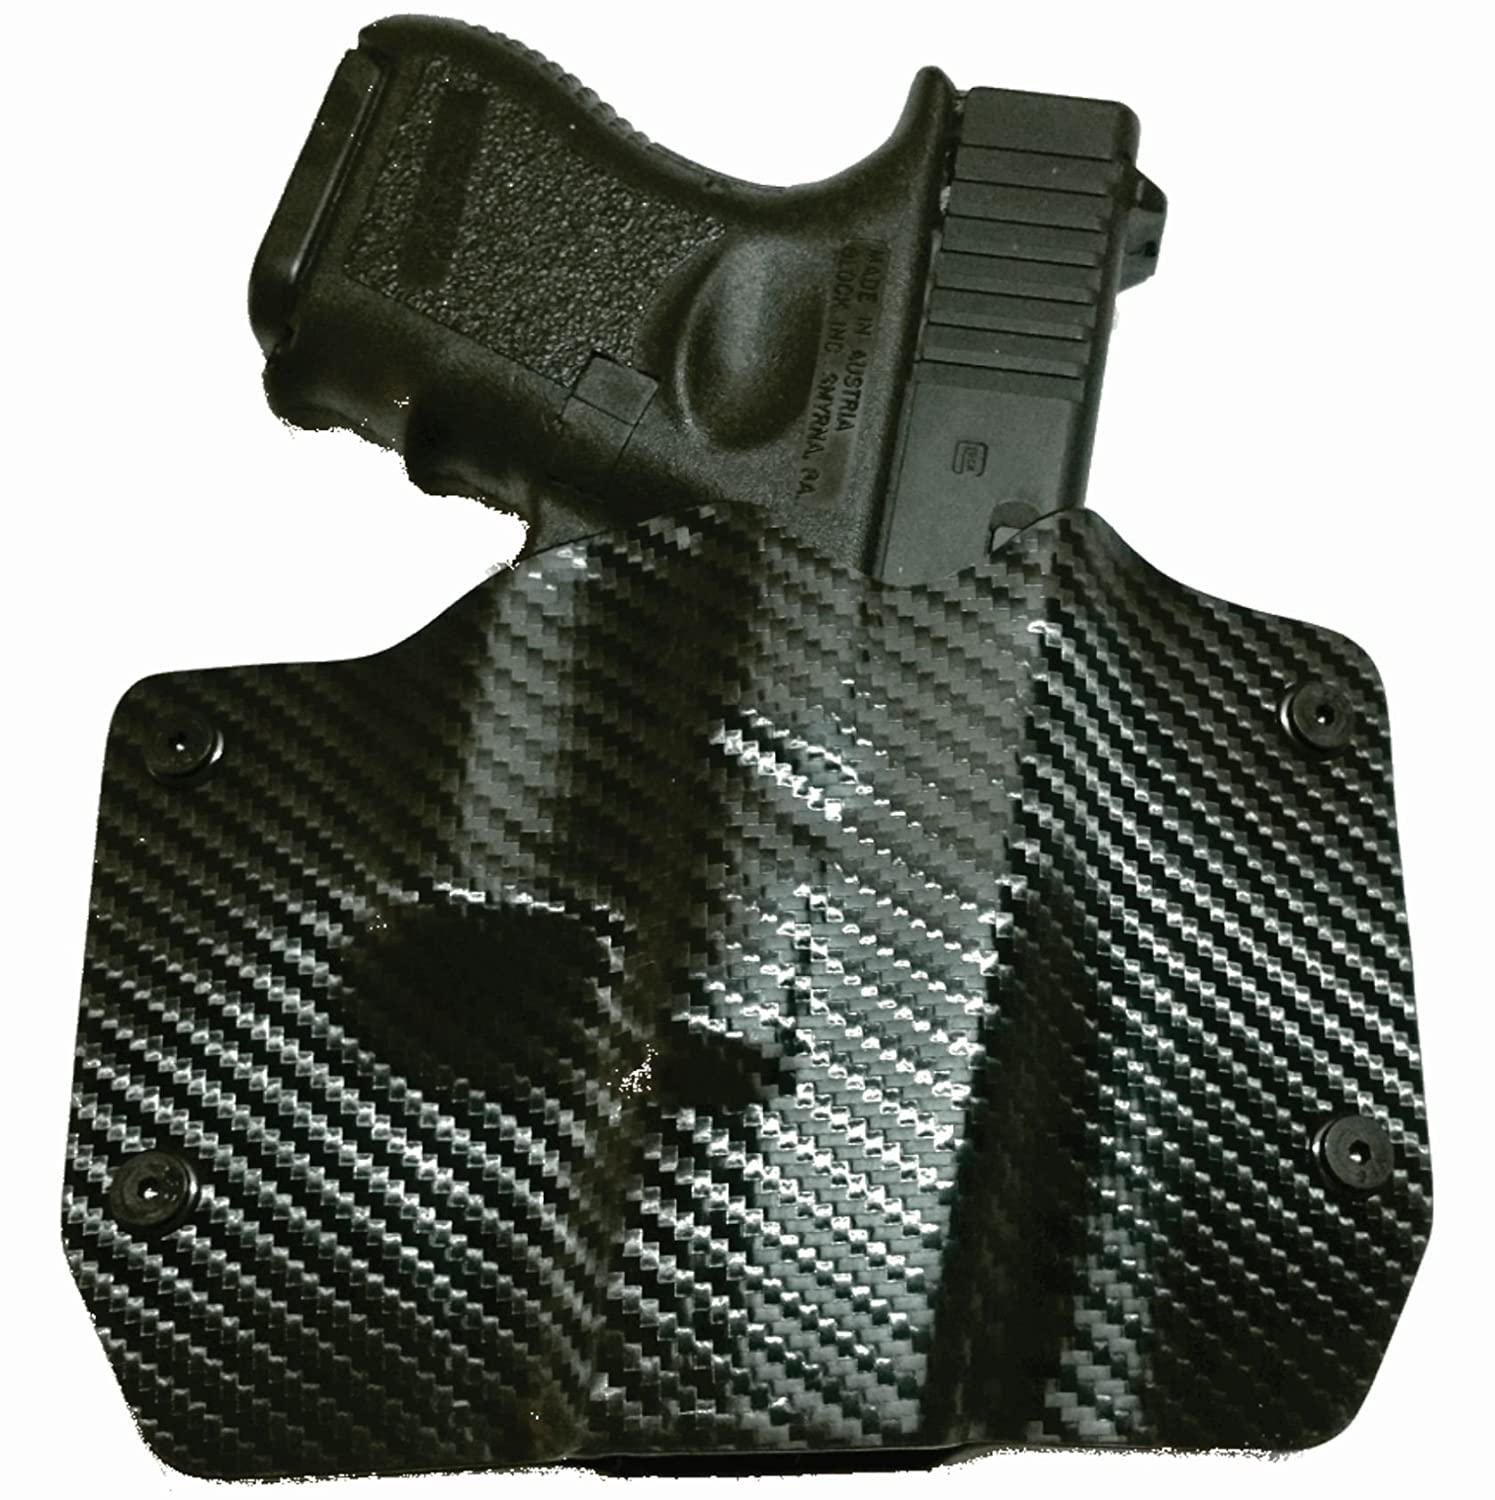 Black Carbon Fiber Kydex OWB holsters for more than 135 different handguns